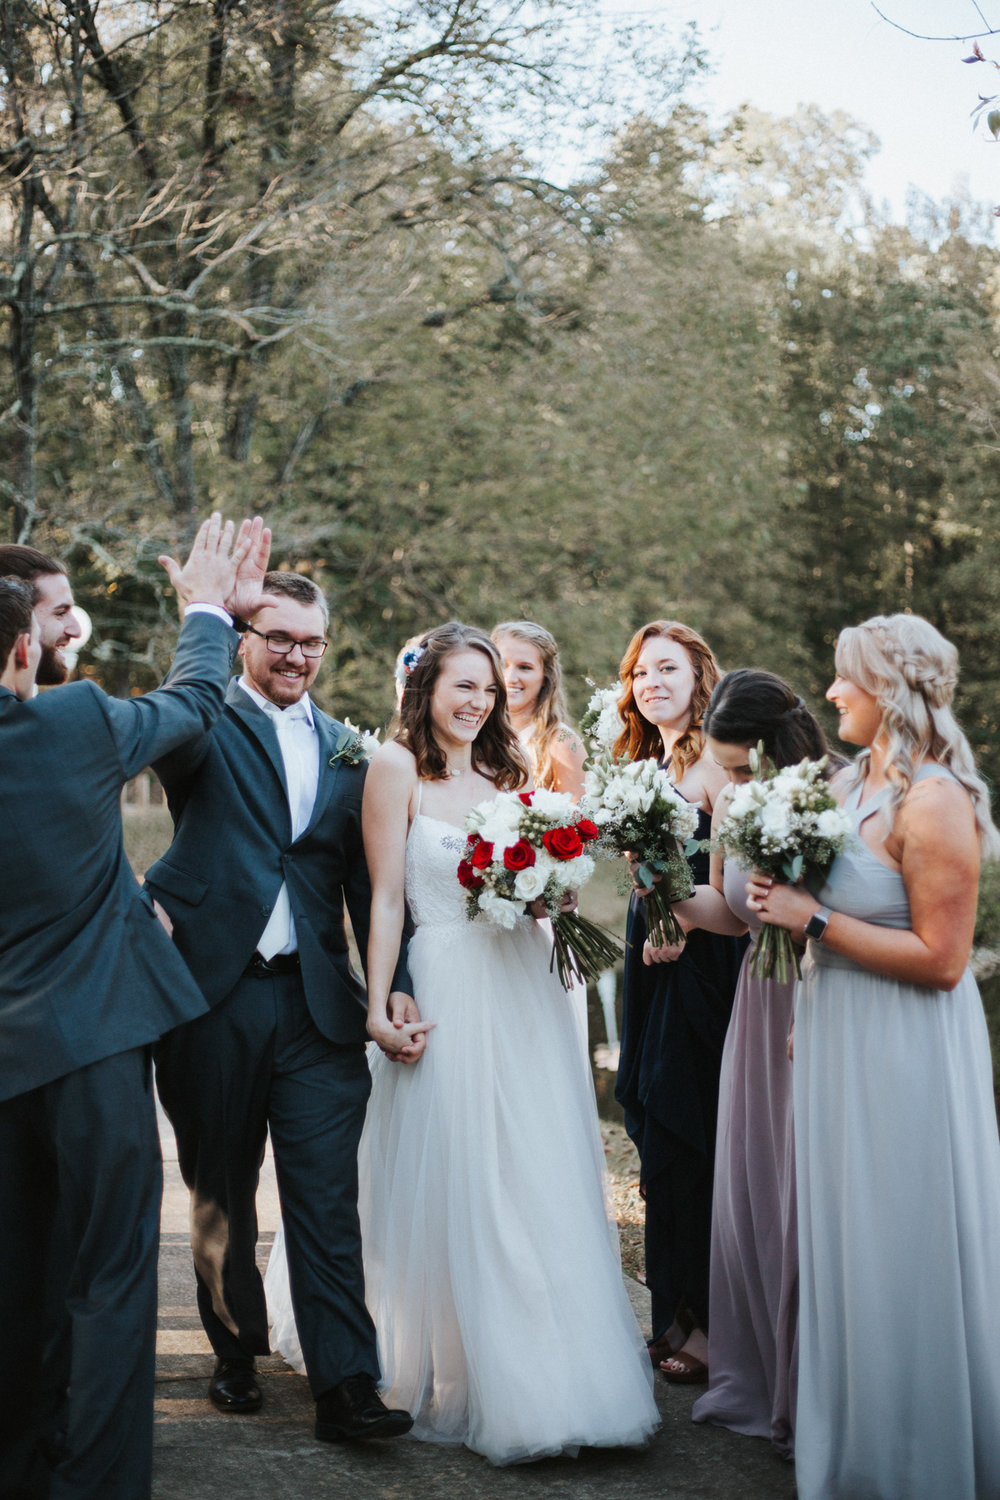 Autumn Fall Wedding Photography at Angel Cottages by the Lake by Greensboro Winston-Salem Photographer